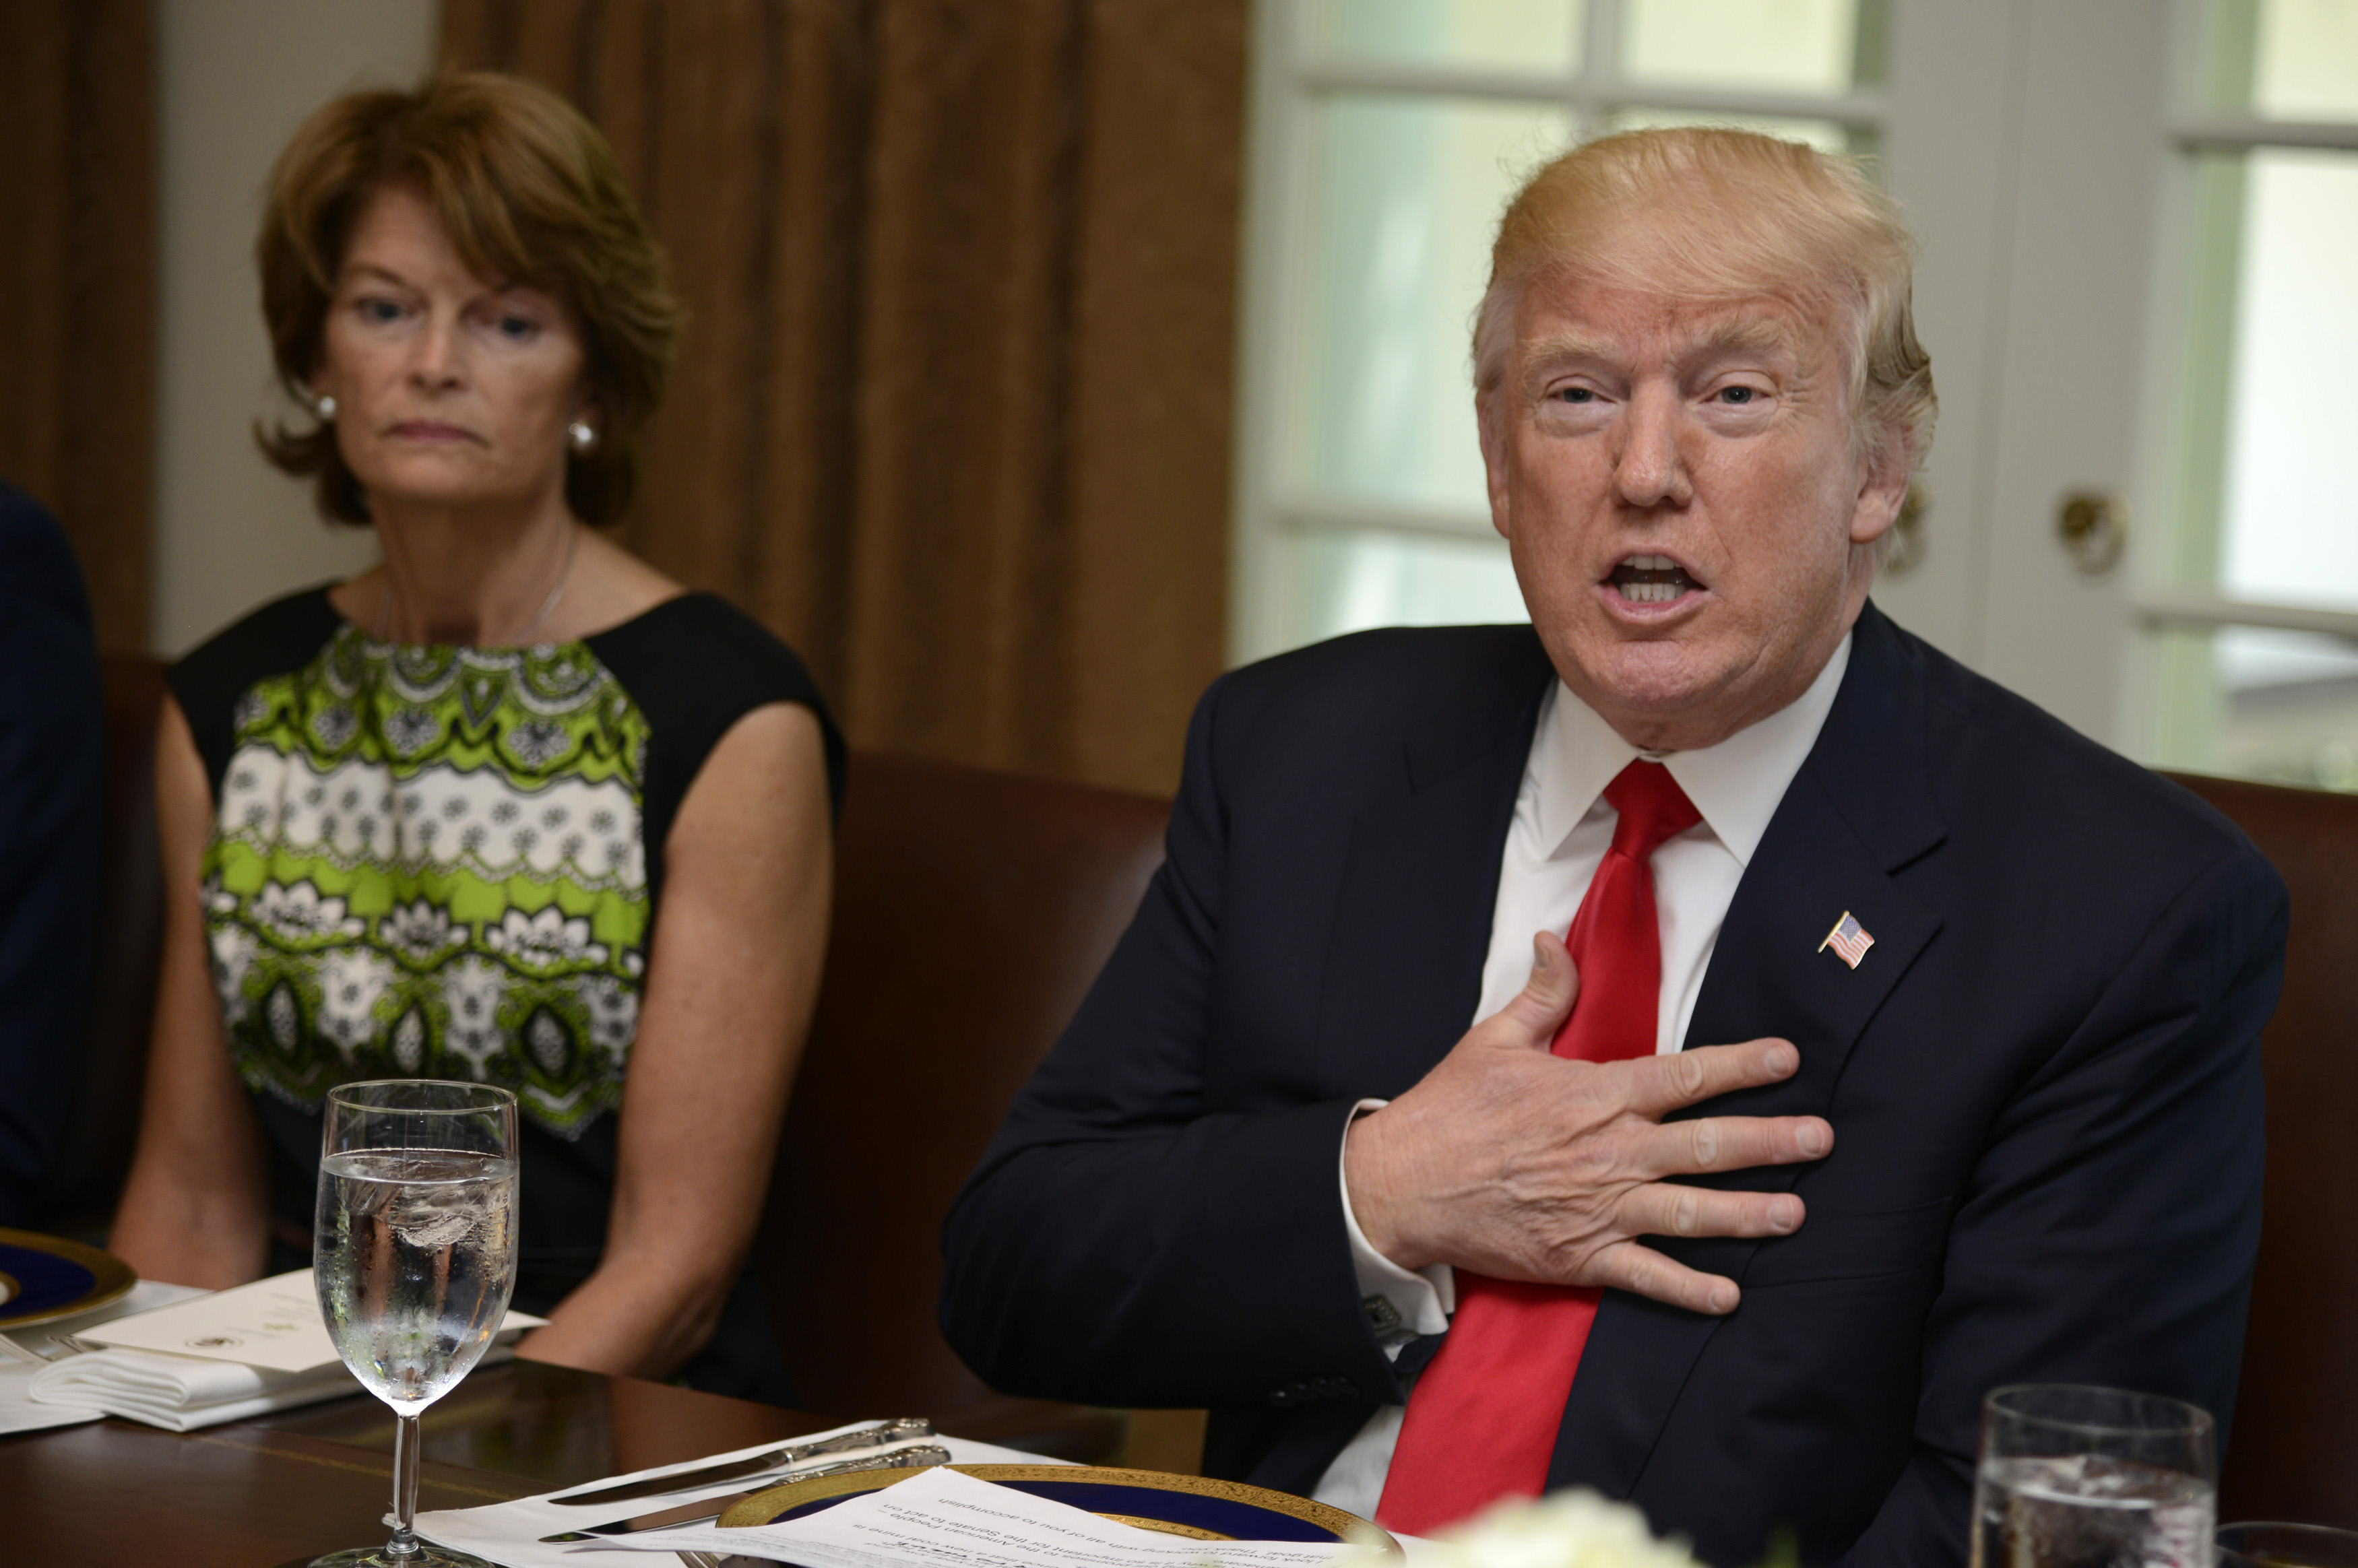 """Republican Senator Murkowski tells Trump to concede now, says """"race is over"""""""